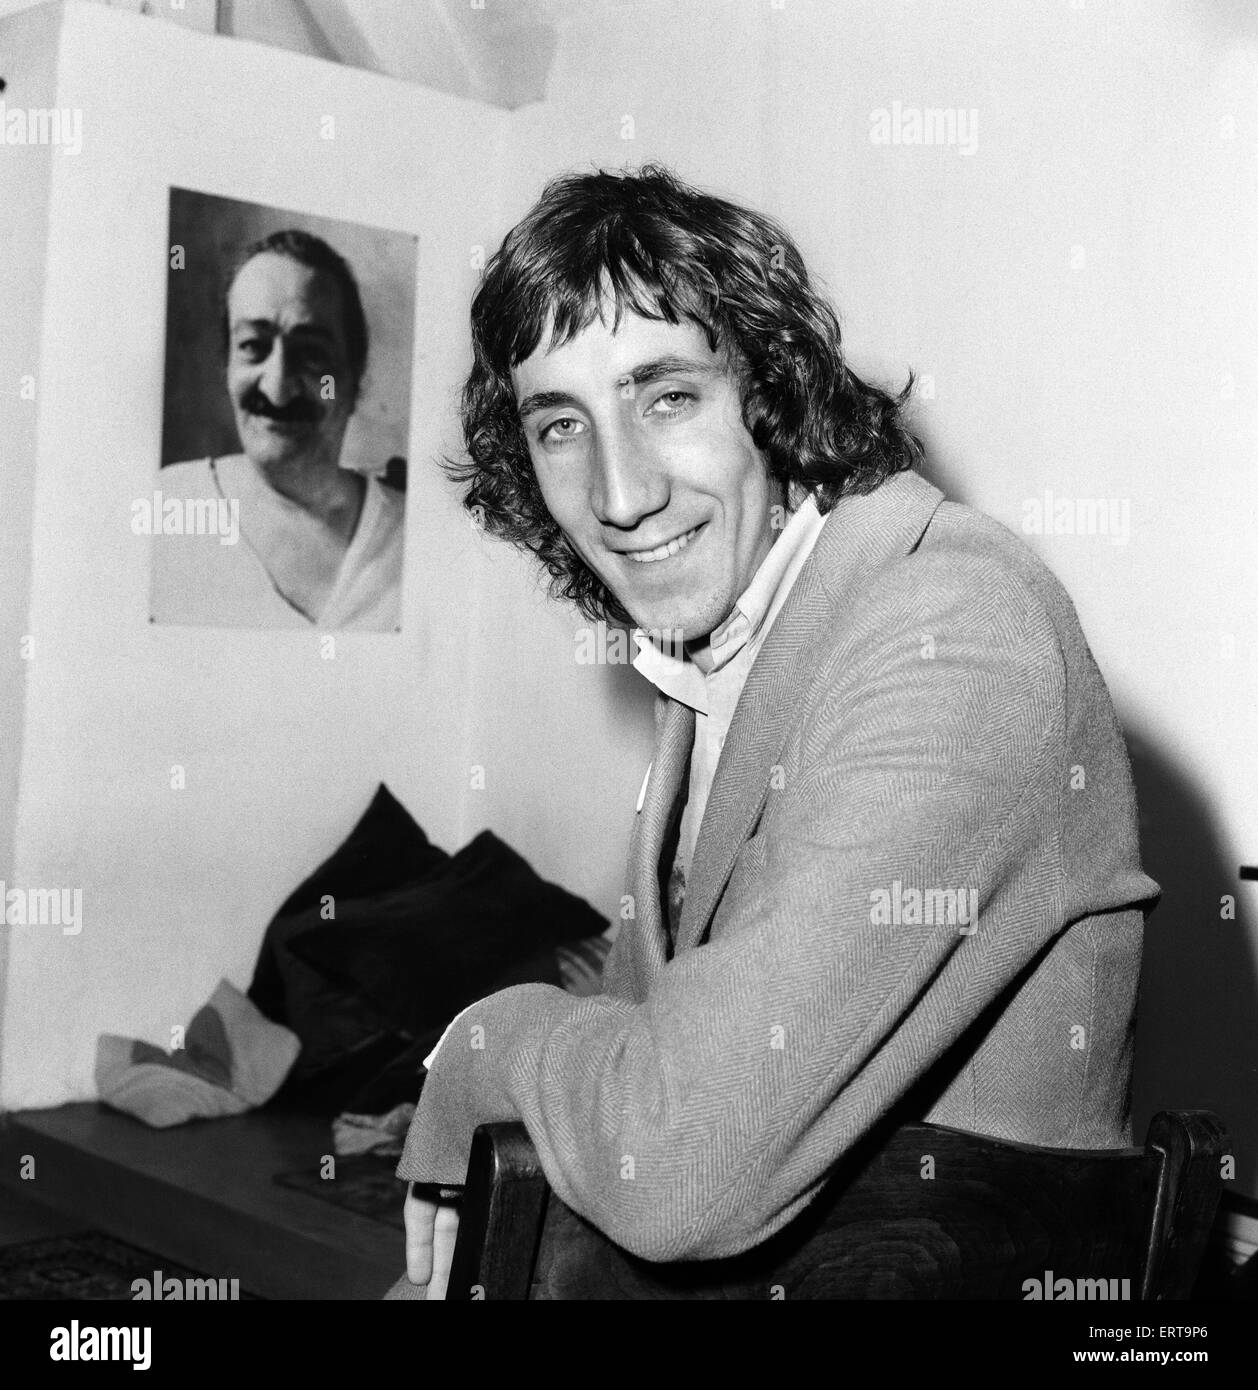 Pete Townshend of British rock group The Who, pictured as he gives a press conference about drugs at Wardour Street, - Stock Image